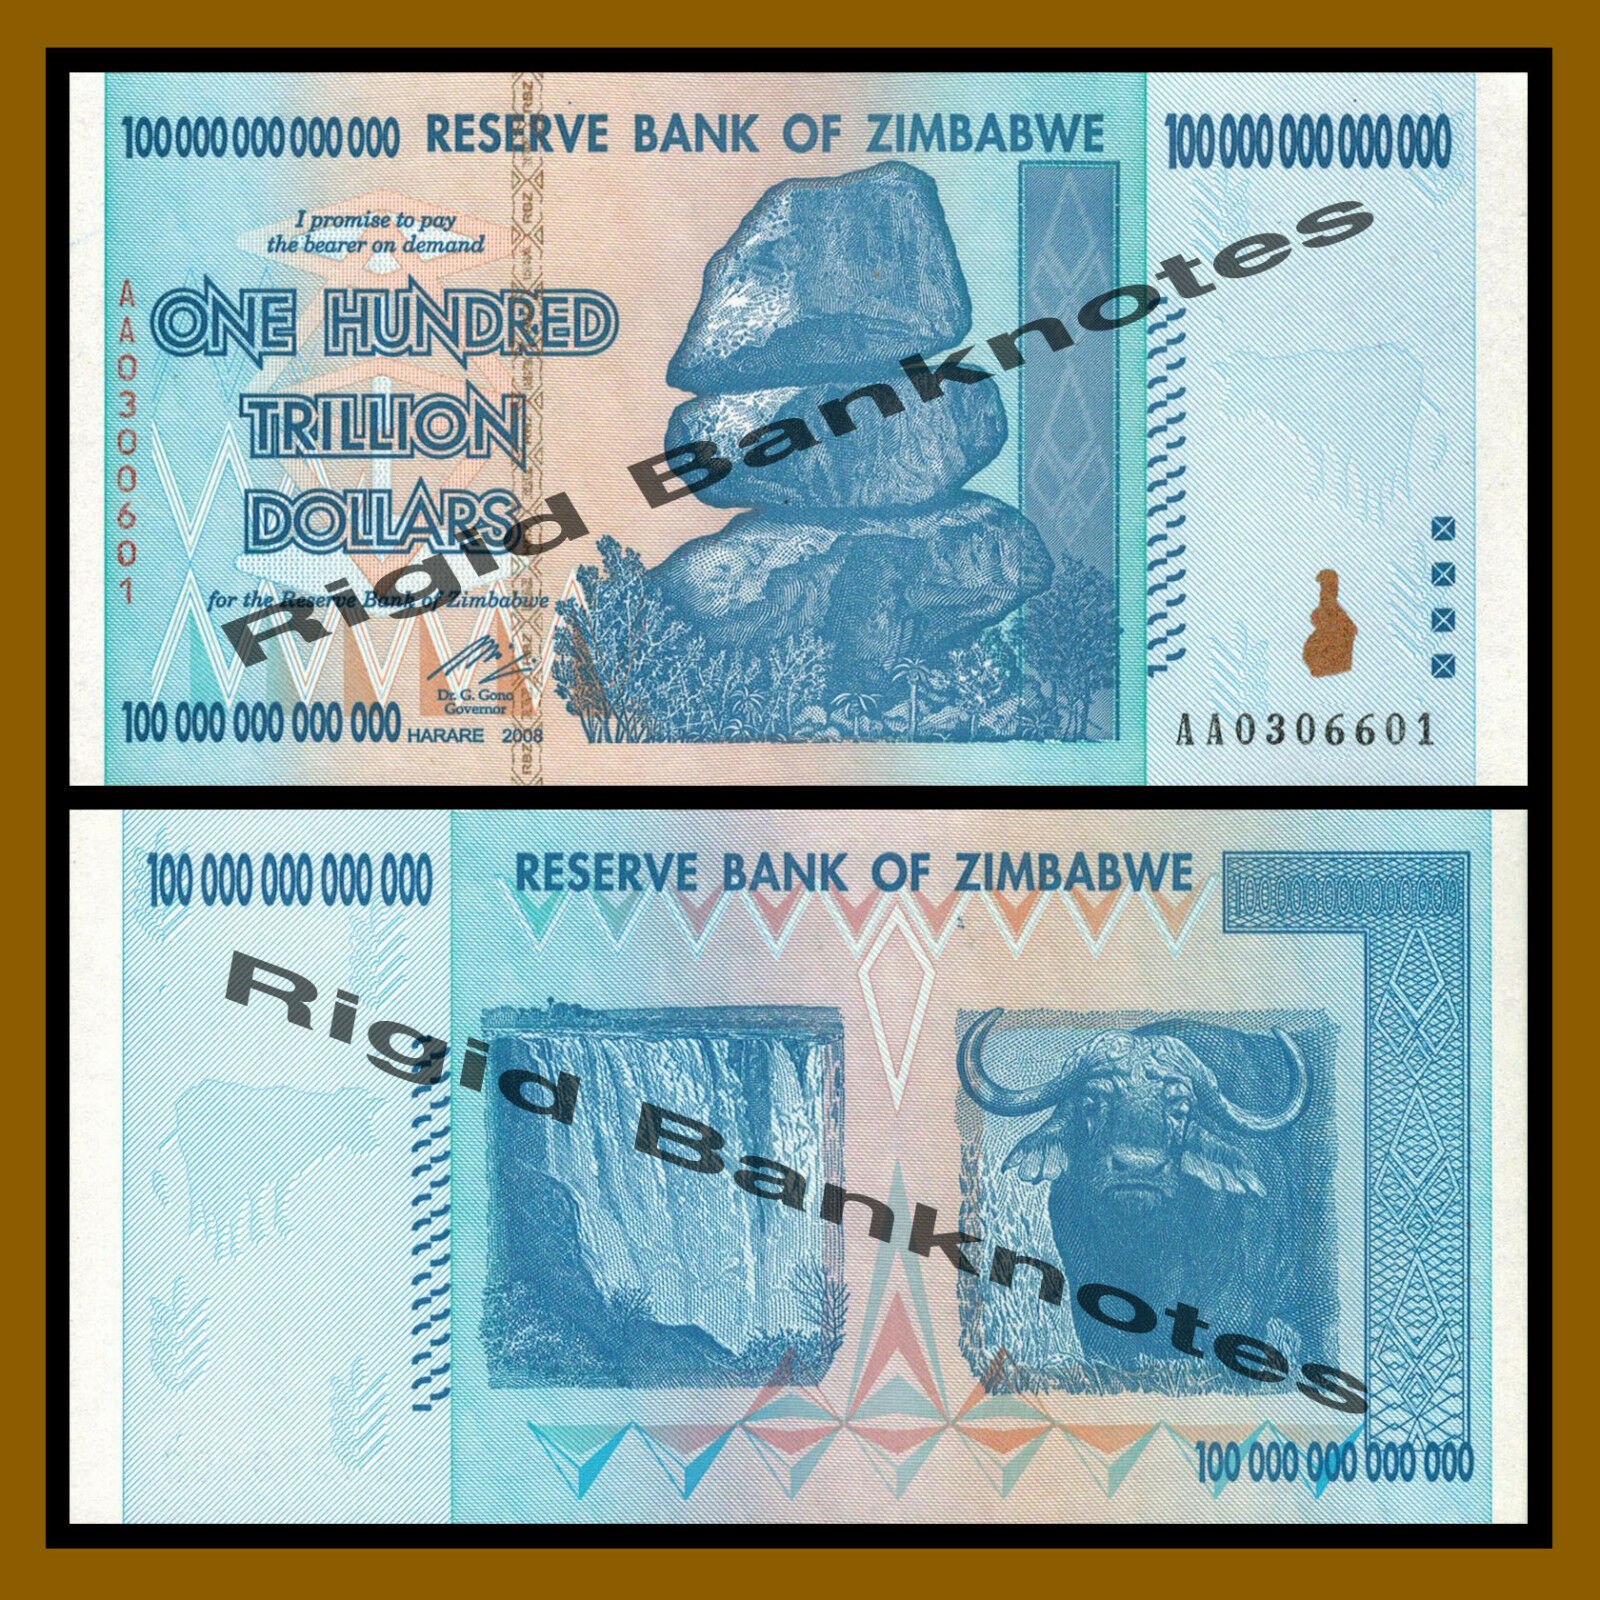 Zimbabwe 100 Trillion Dollars (Bundle Brick) x 1000 Pcs